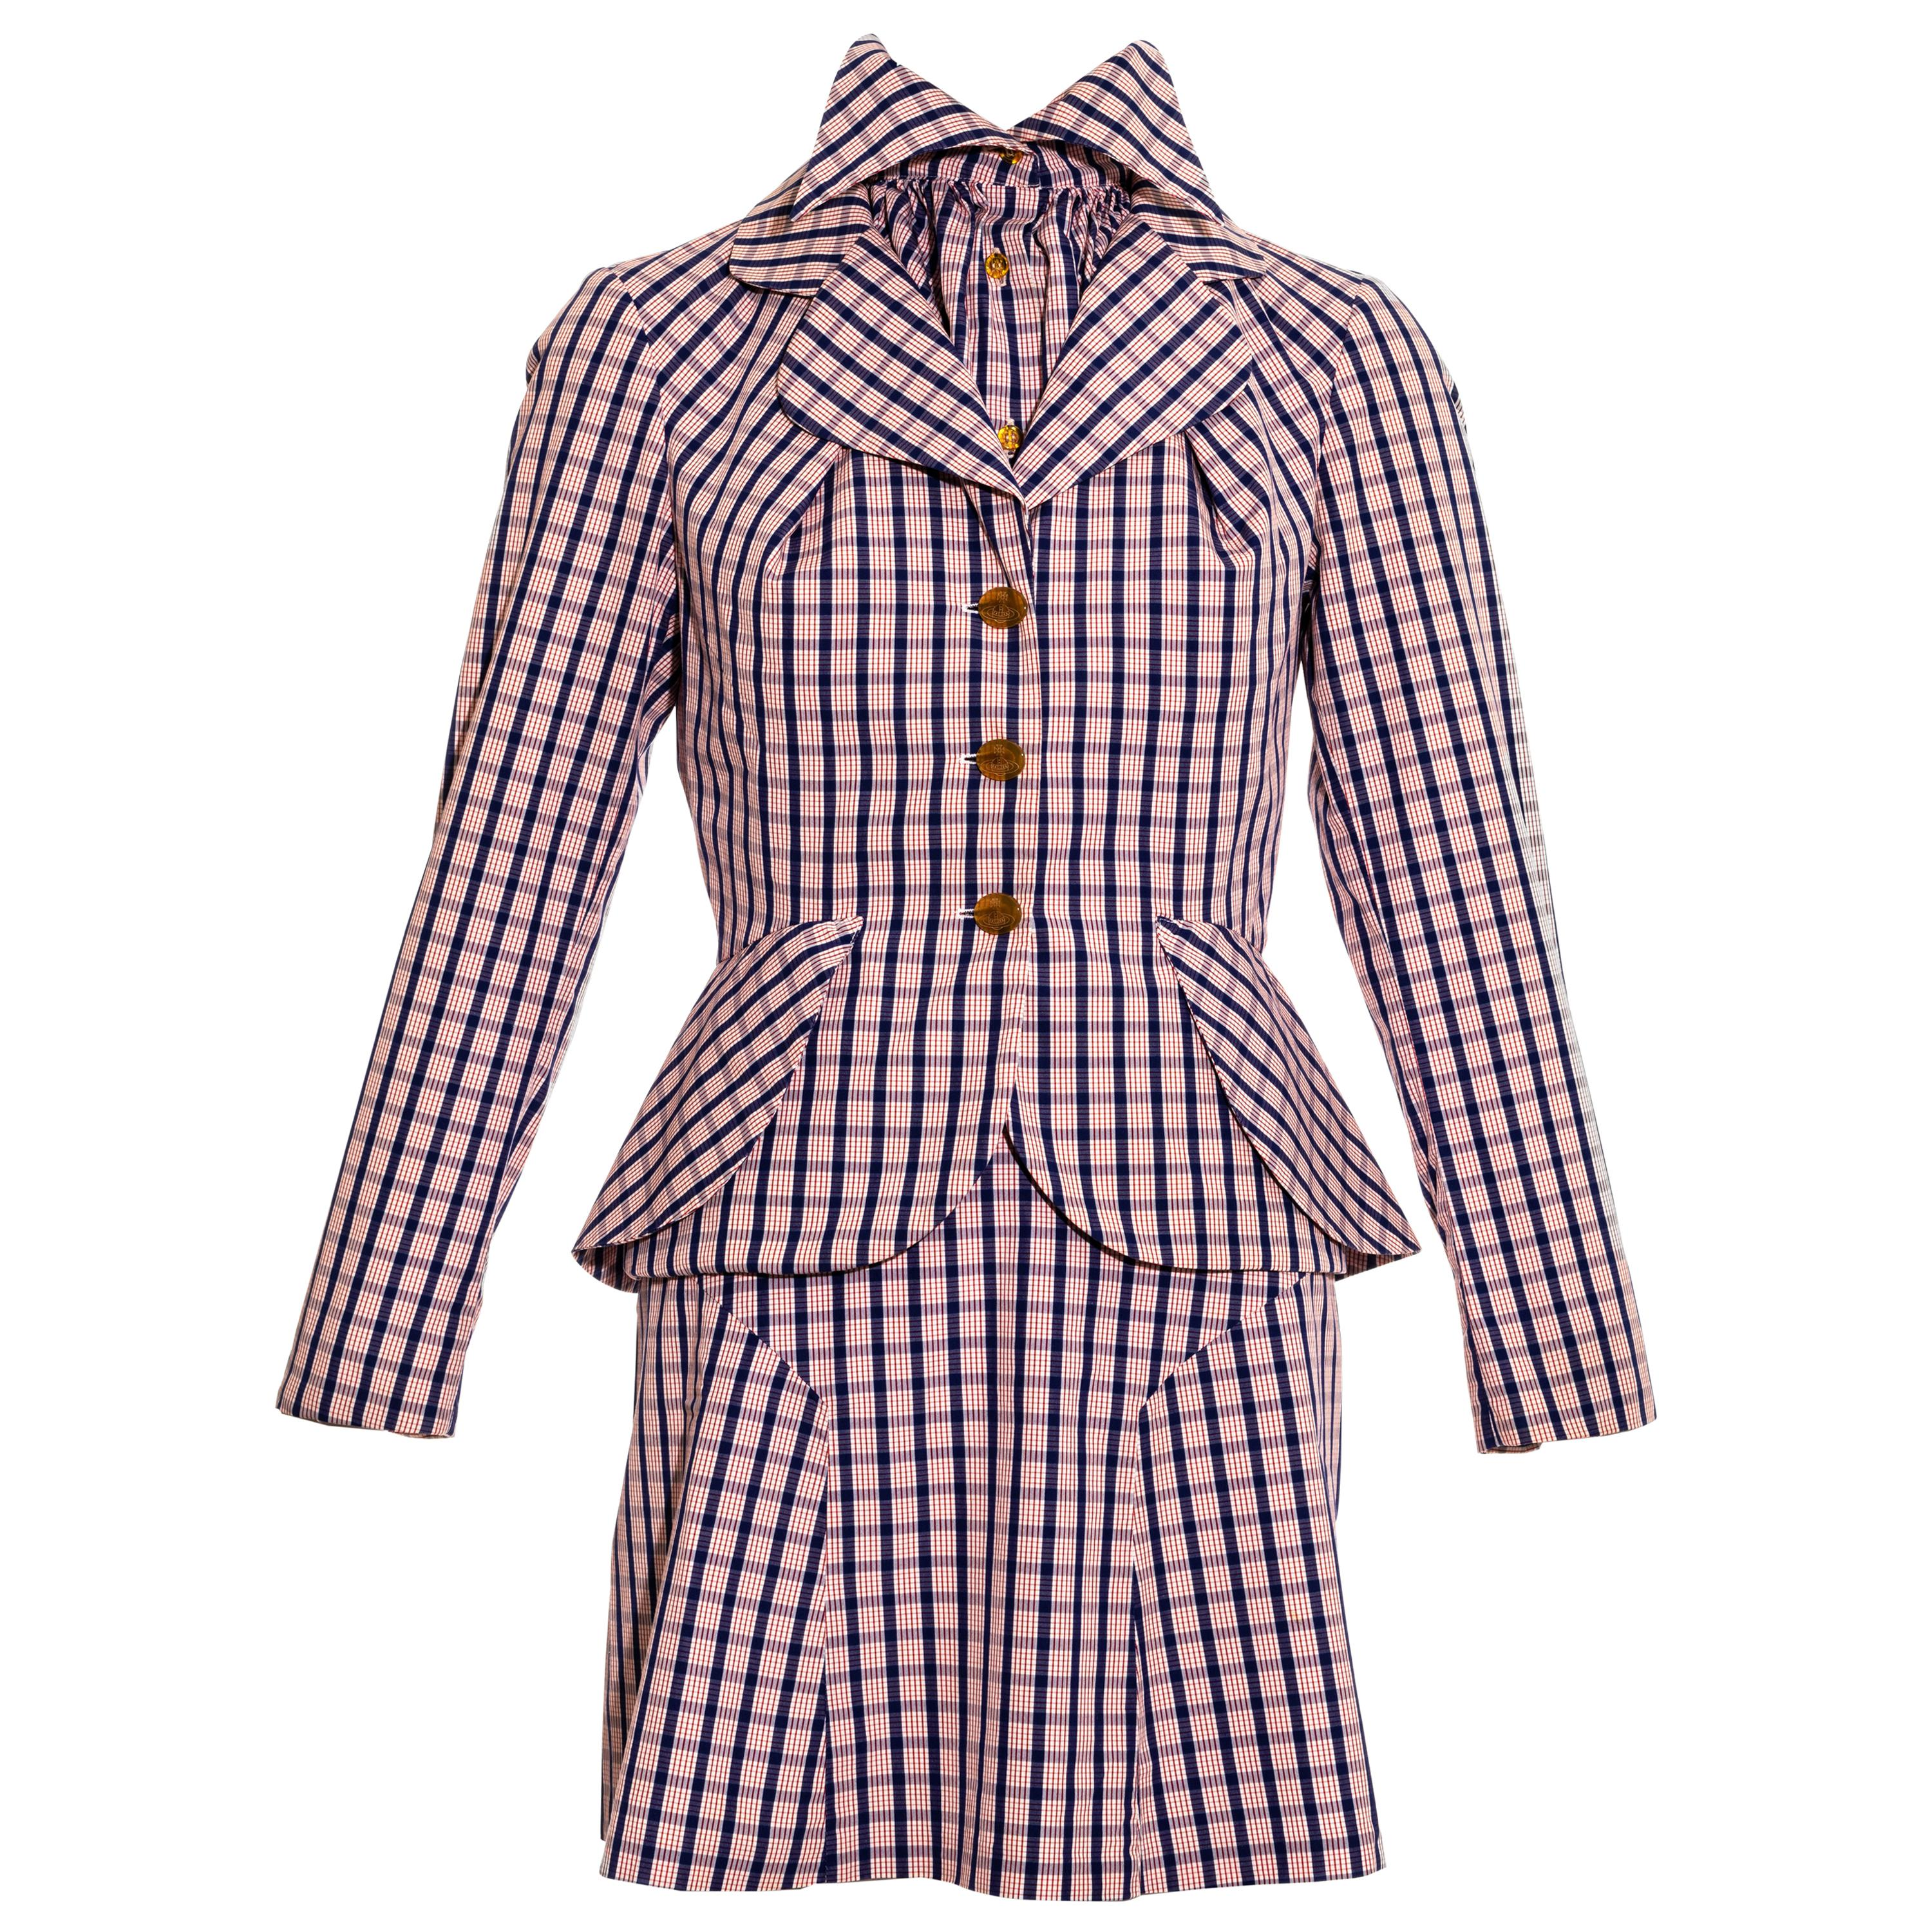 Vivienne Westwood red and blue checked cotton three piece skirt suit, ss 1994